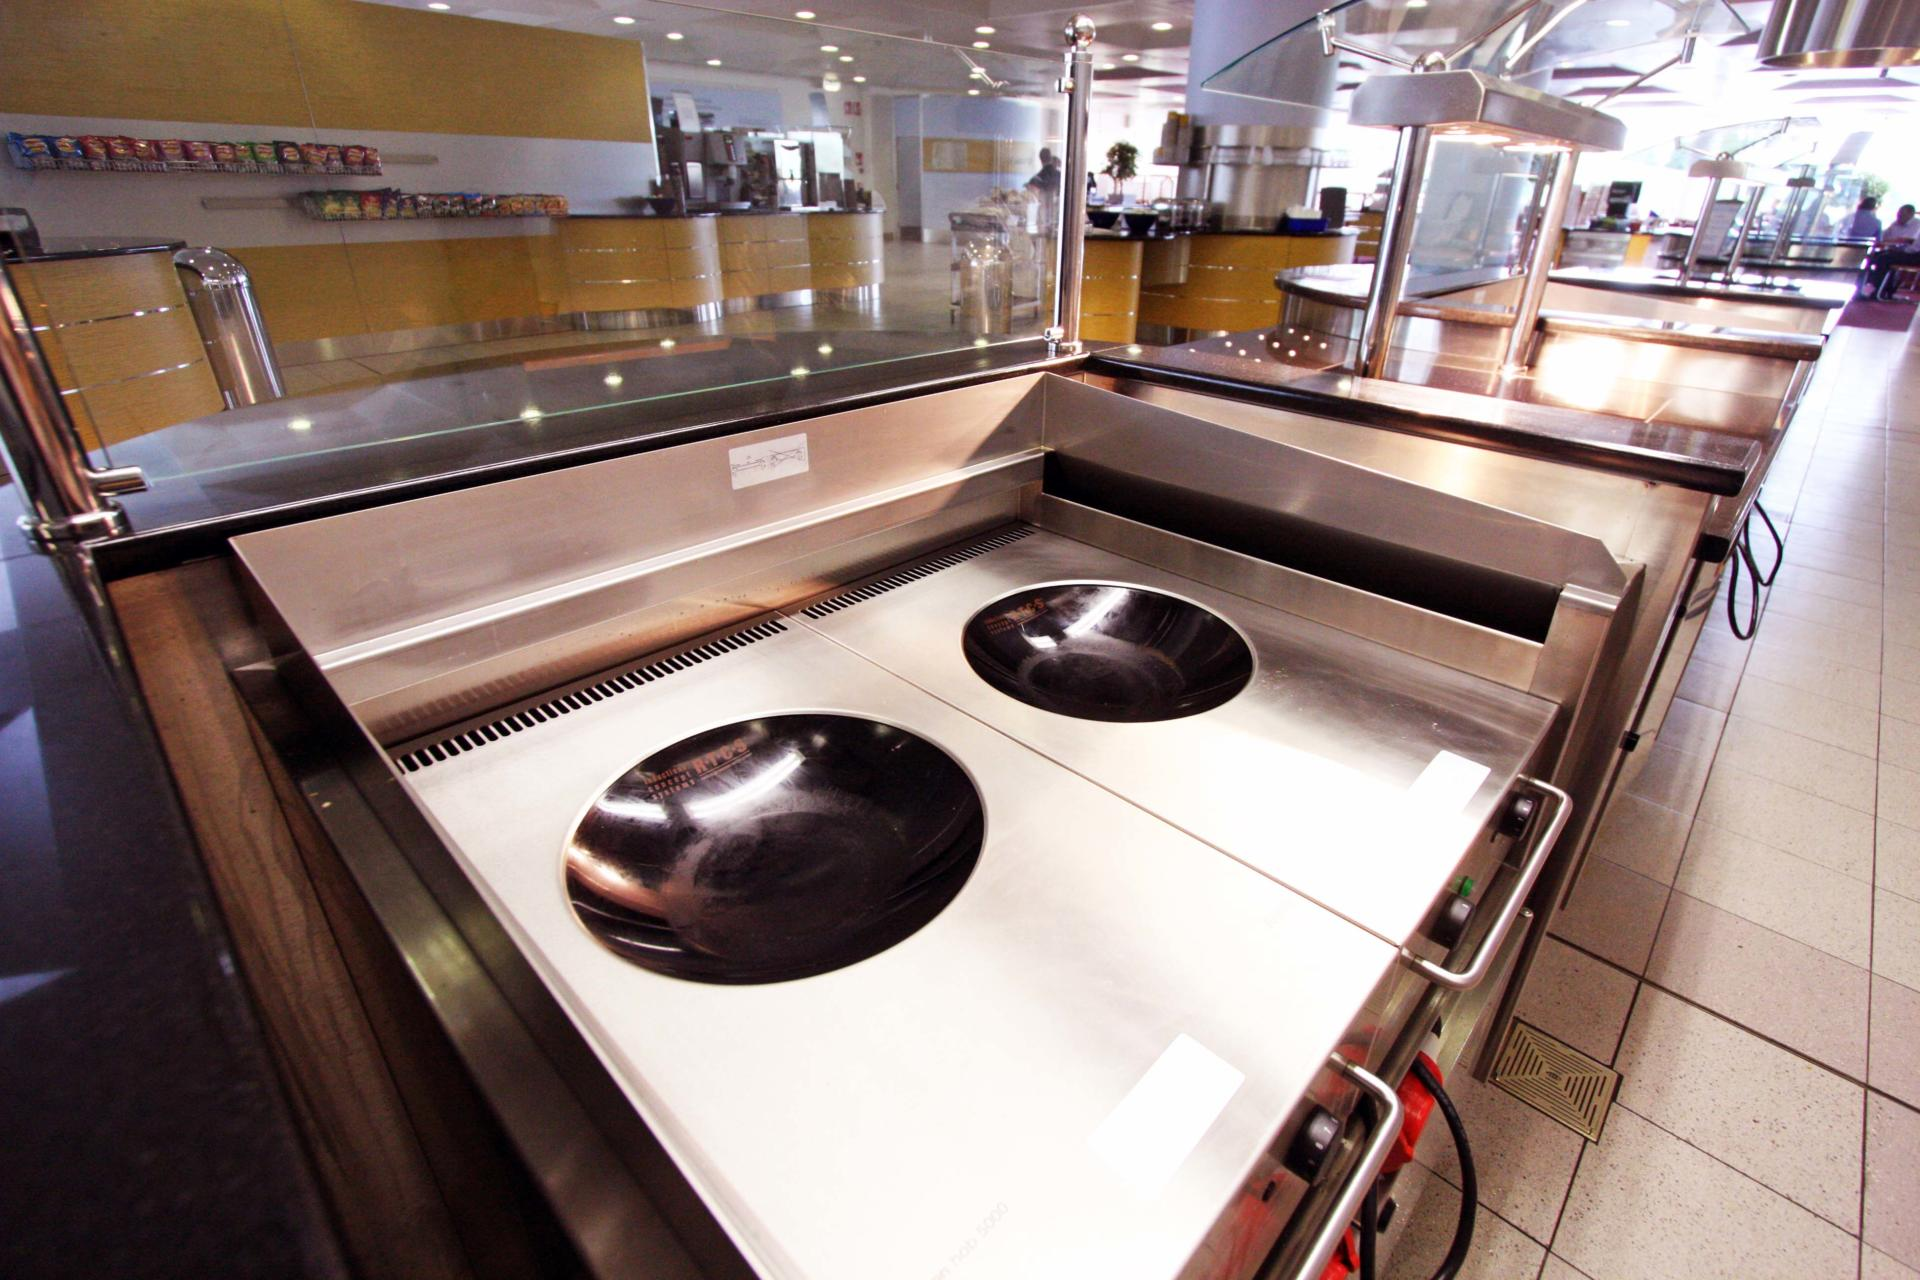 nationwide_swindon_staff restaurant_servery_induction wok (4)